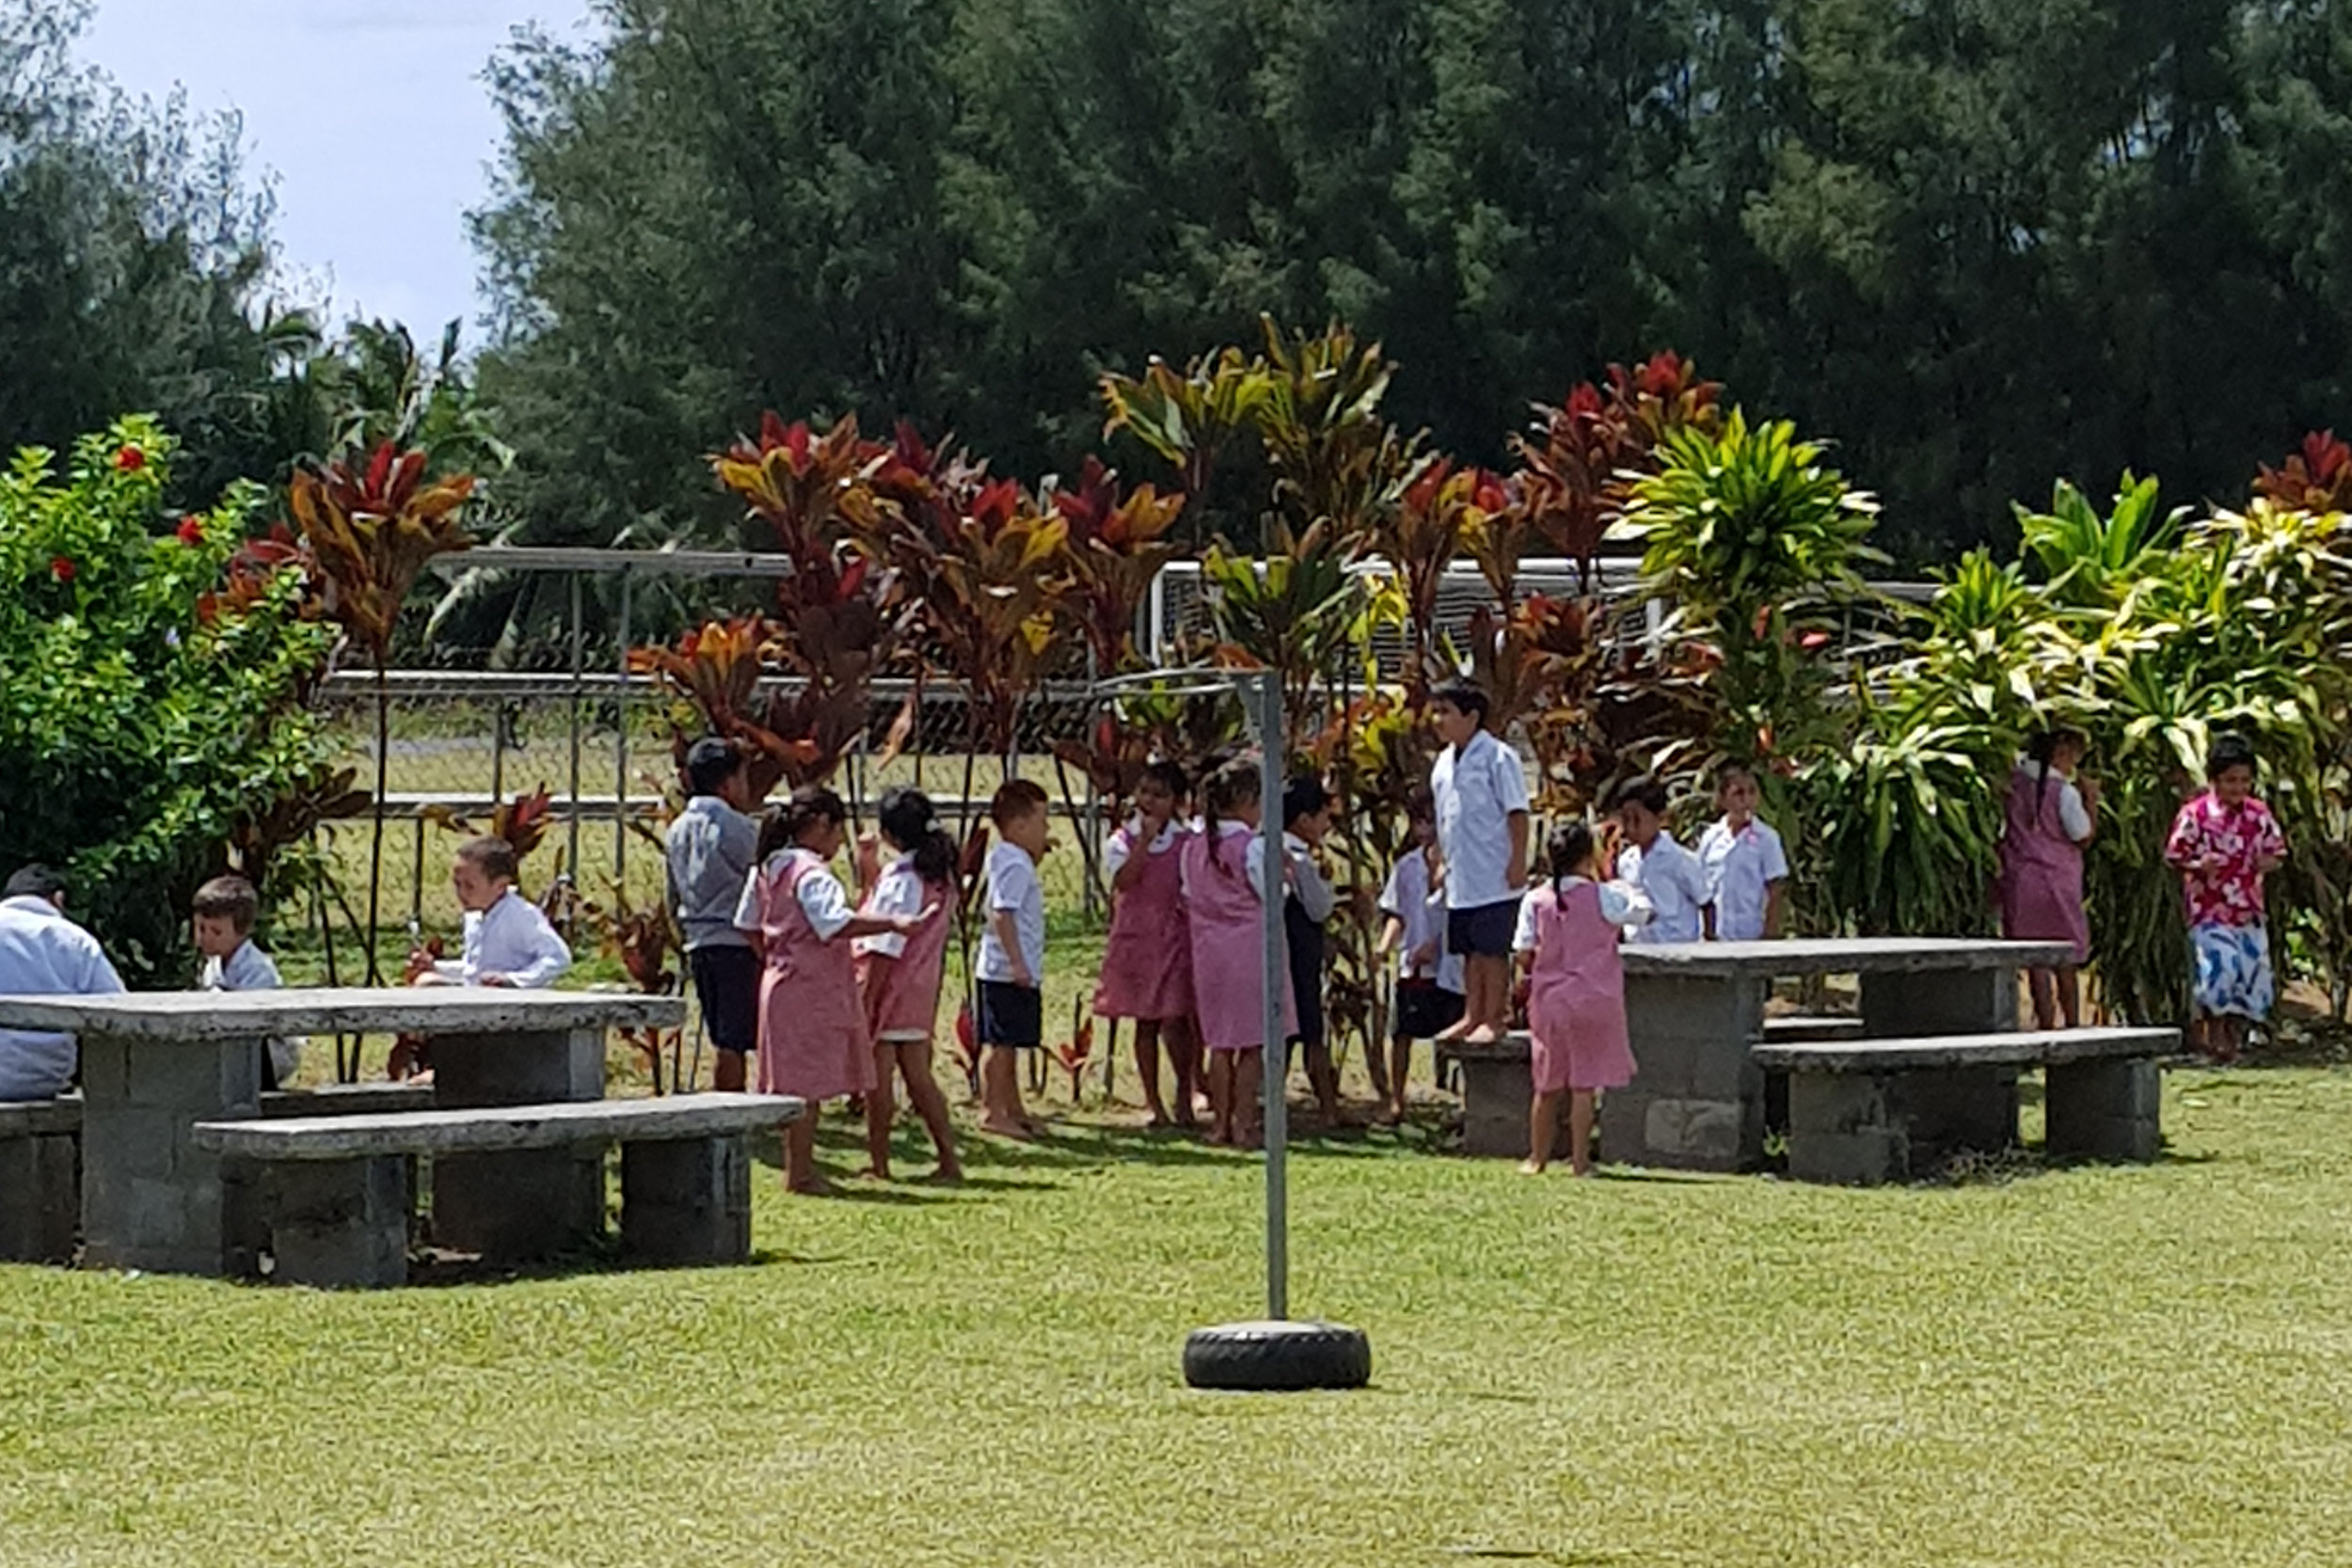 Takitumu Primary School students brushing their teeth as part of their Oral Health Project